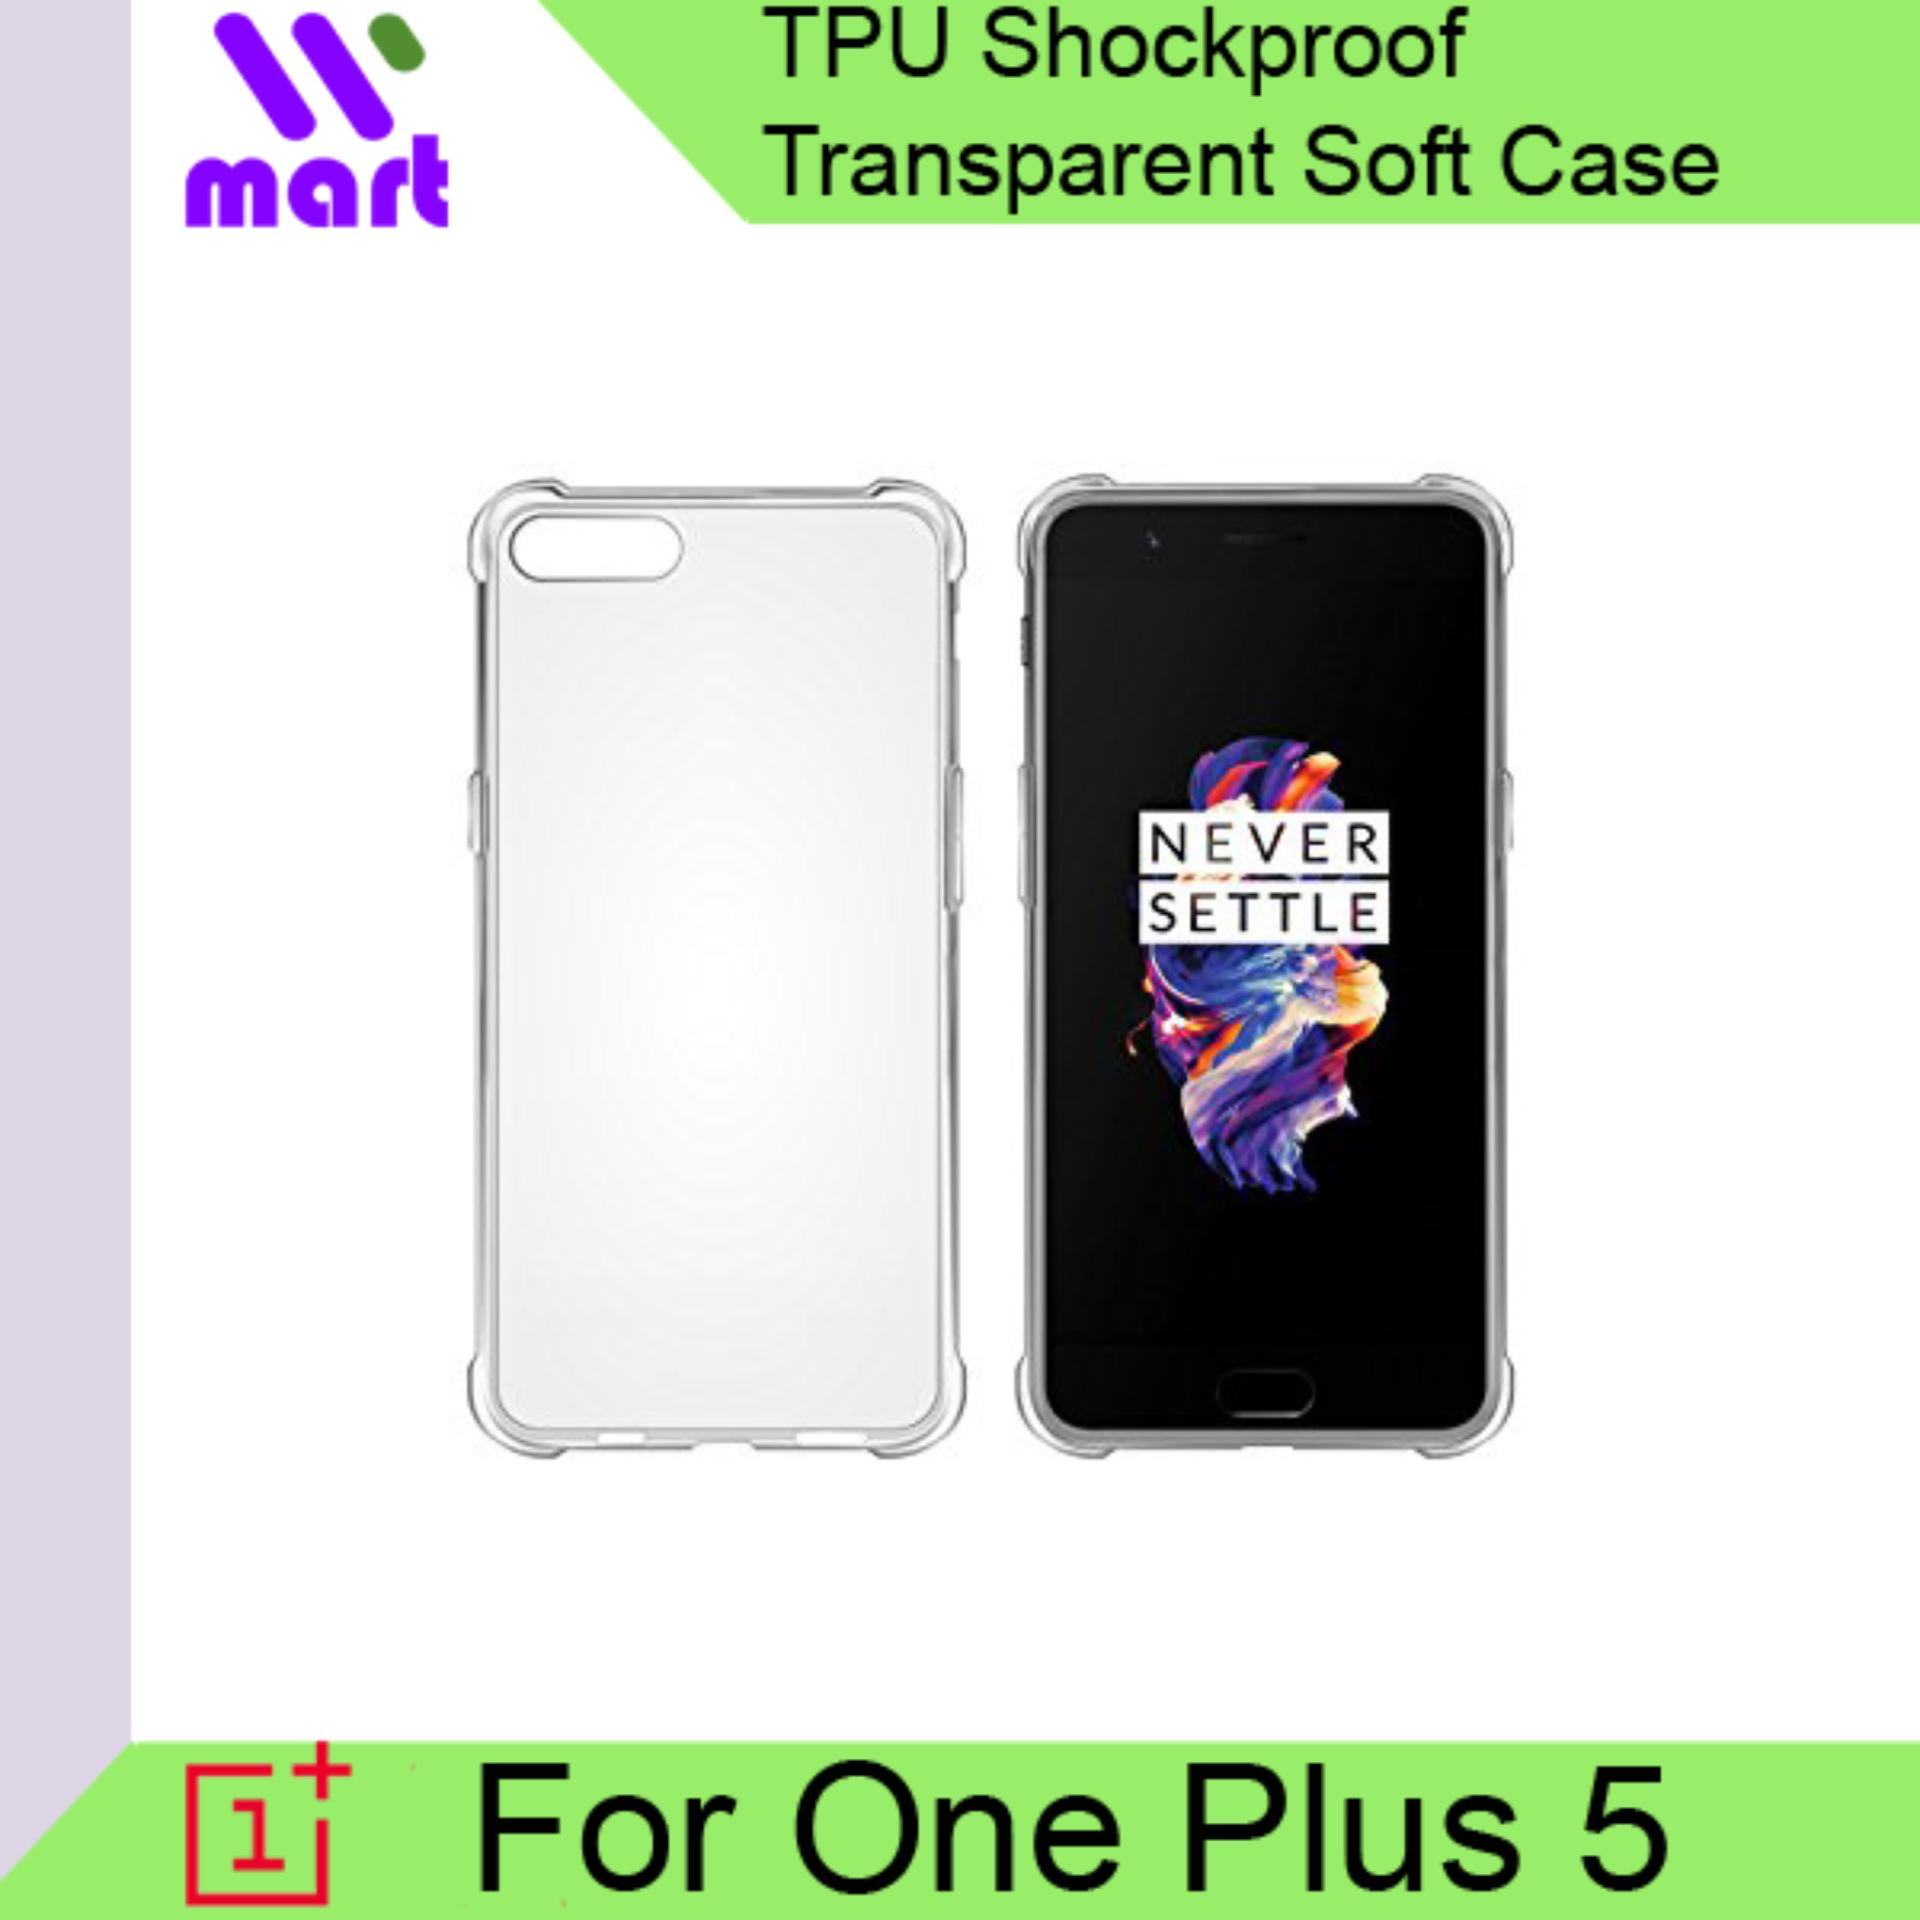 TPU Shockproof Transparent Soft Case For One Plus 5